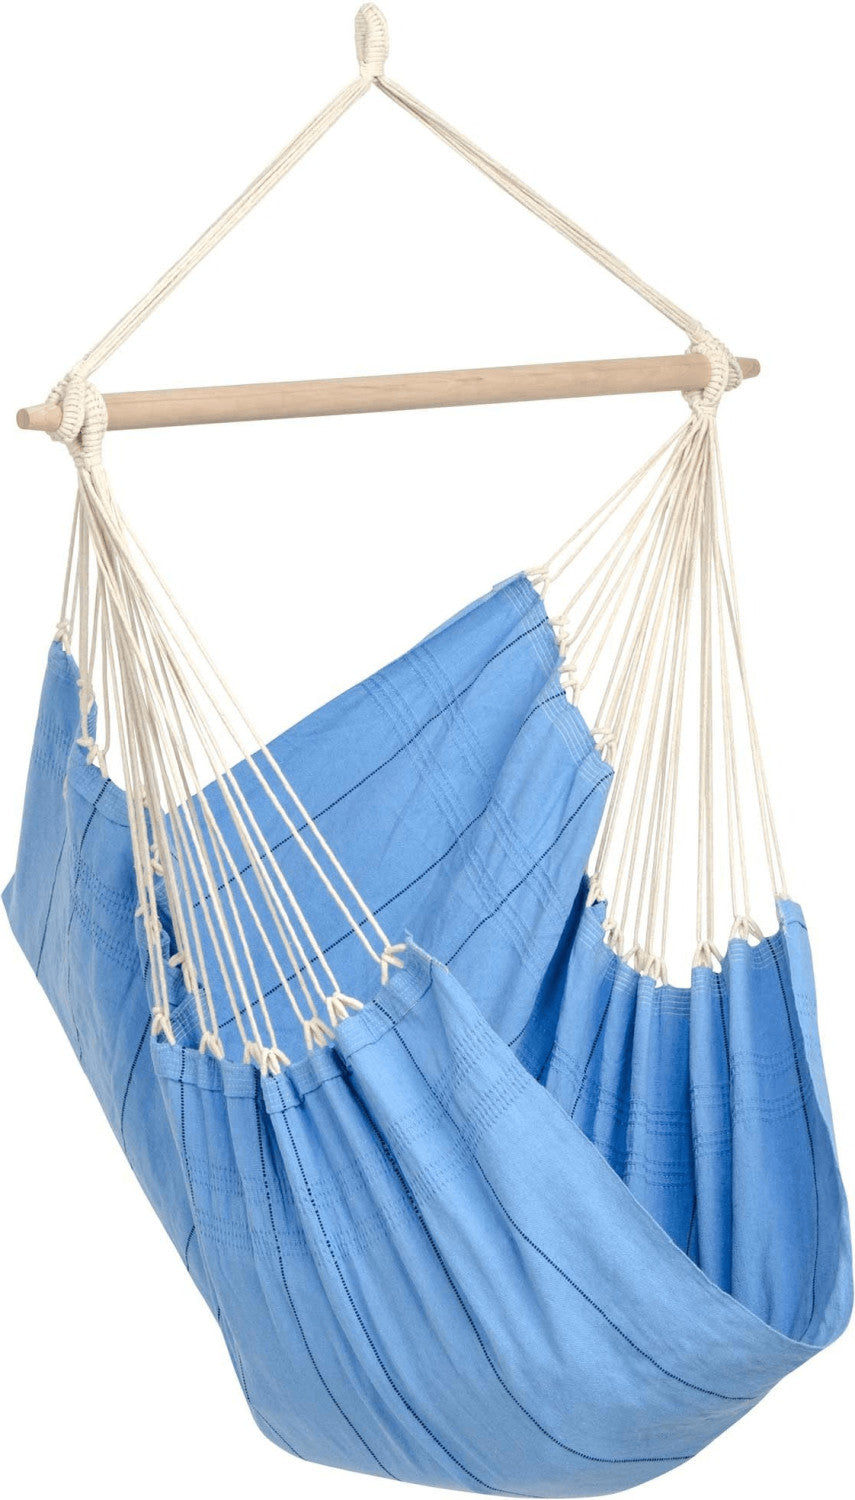 Amazonas Artista Blue Hanging Chair - Ruby's Garden Boutique